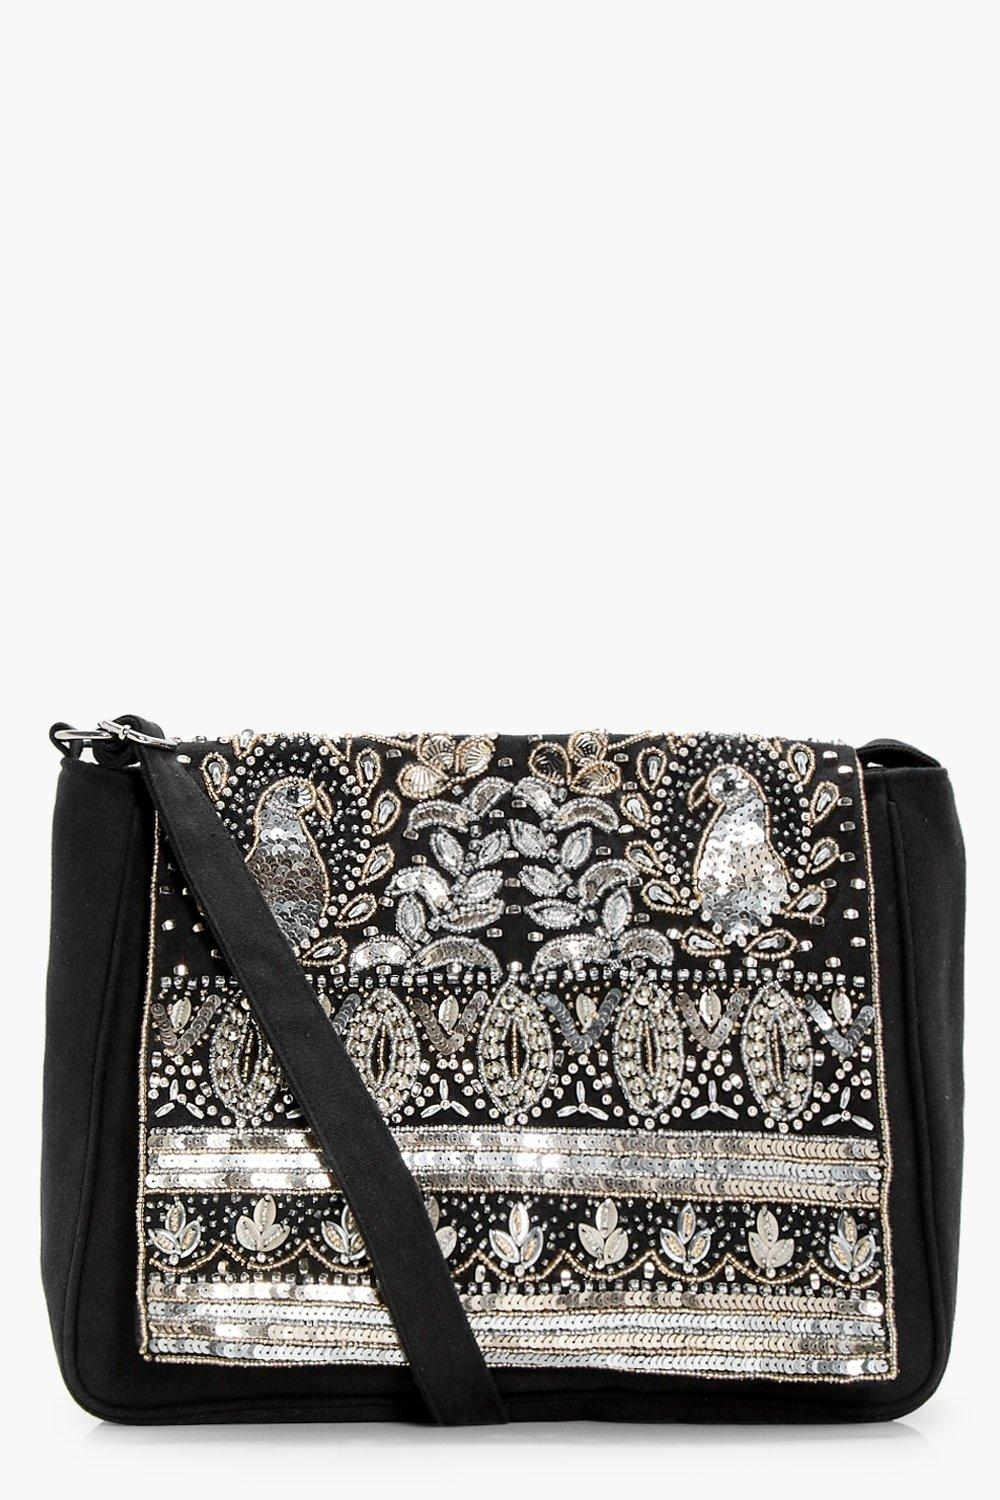 All Over Embellished Cross Body - black - Amelia A